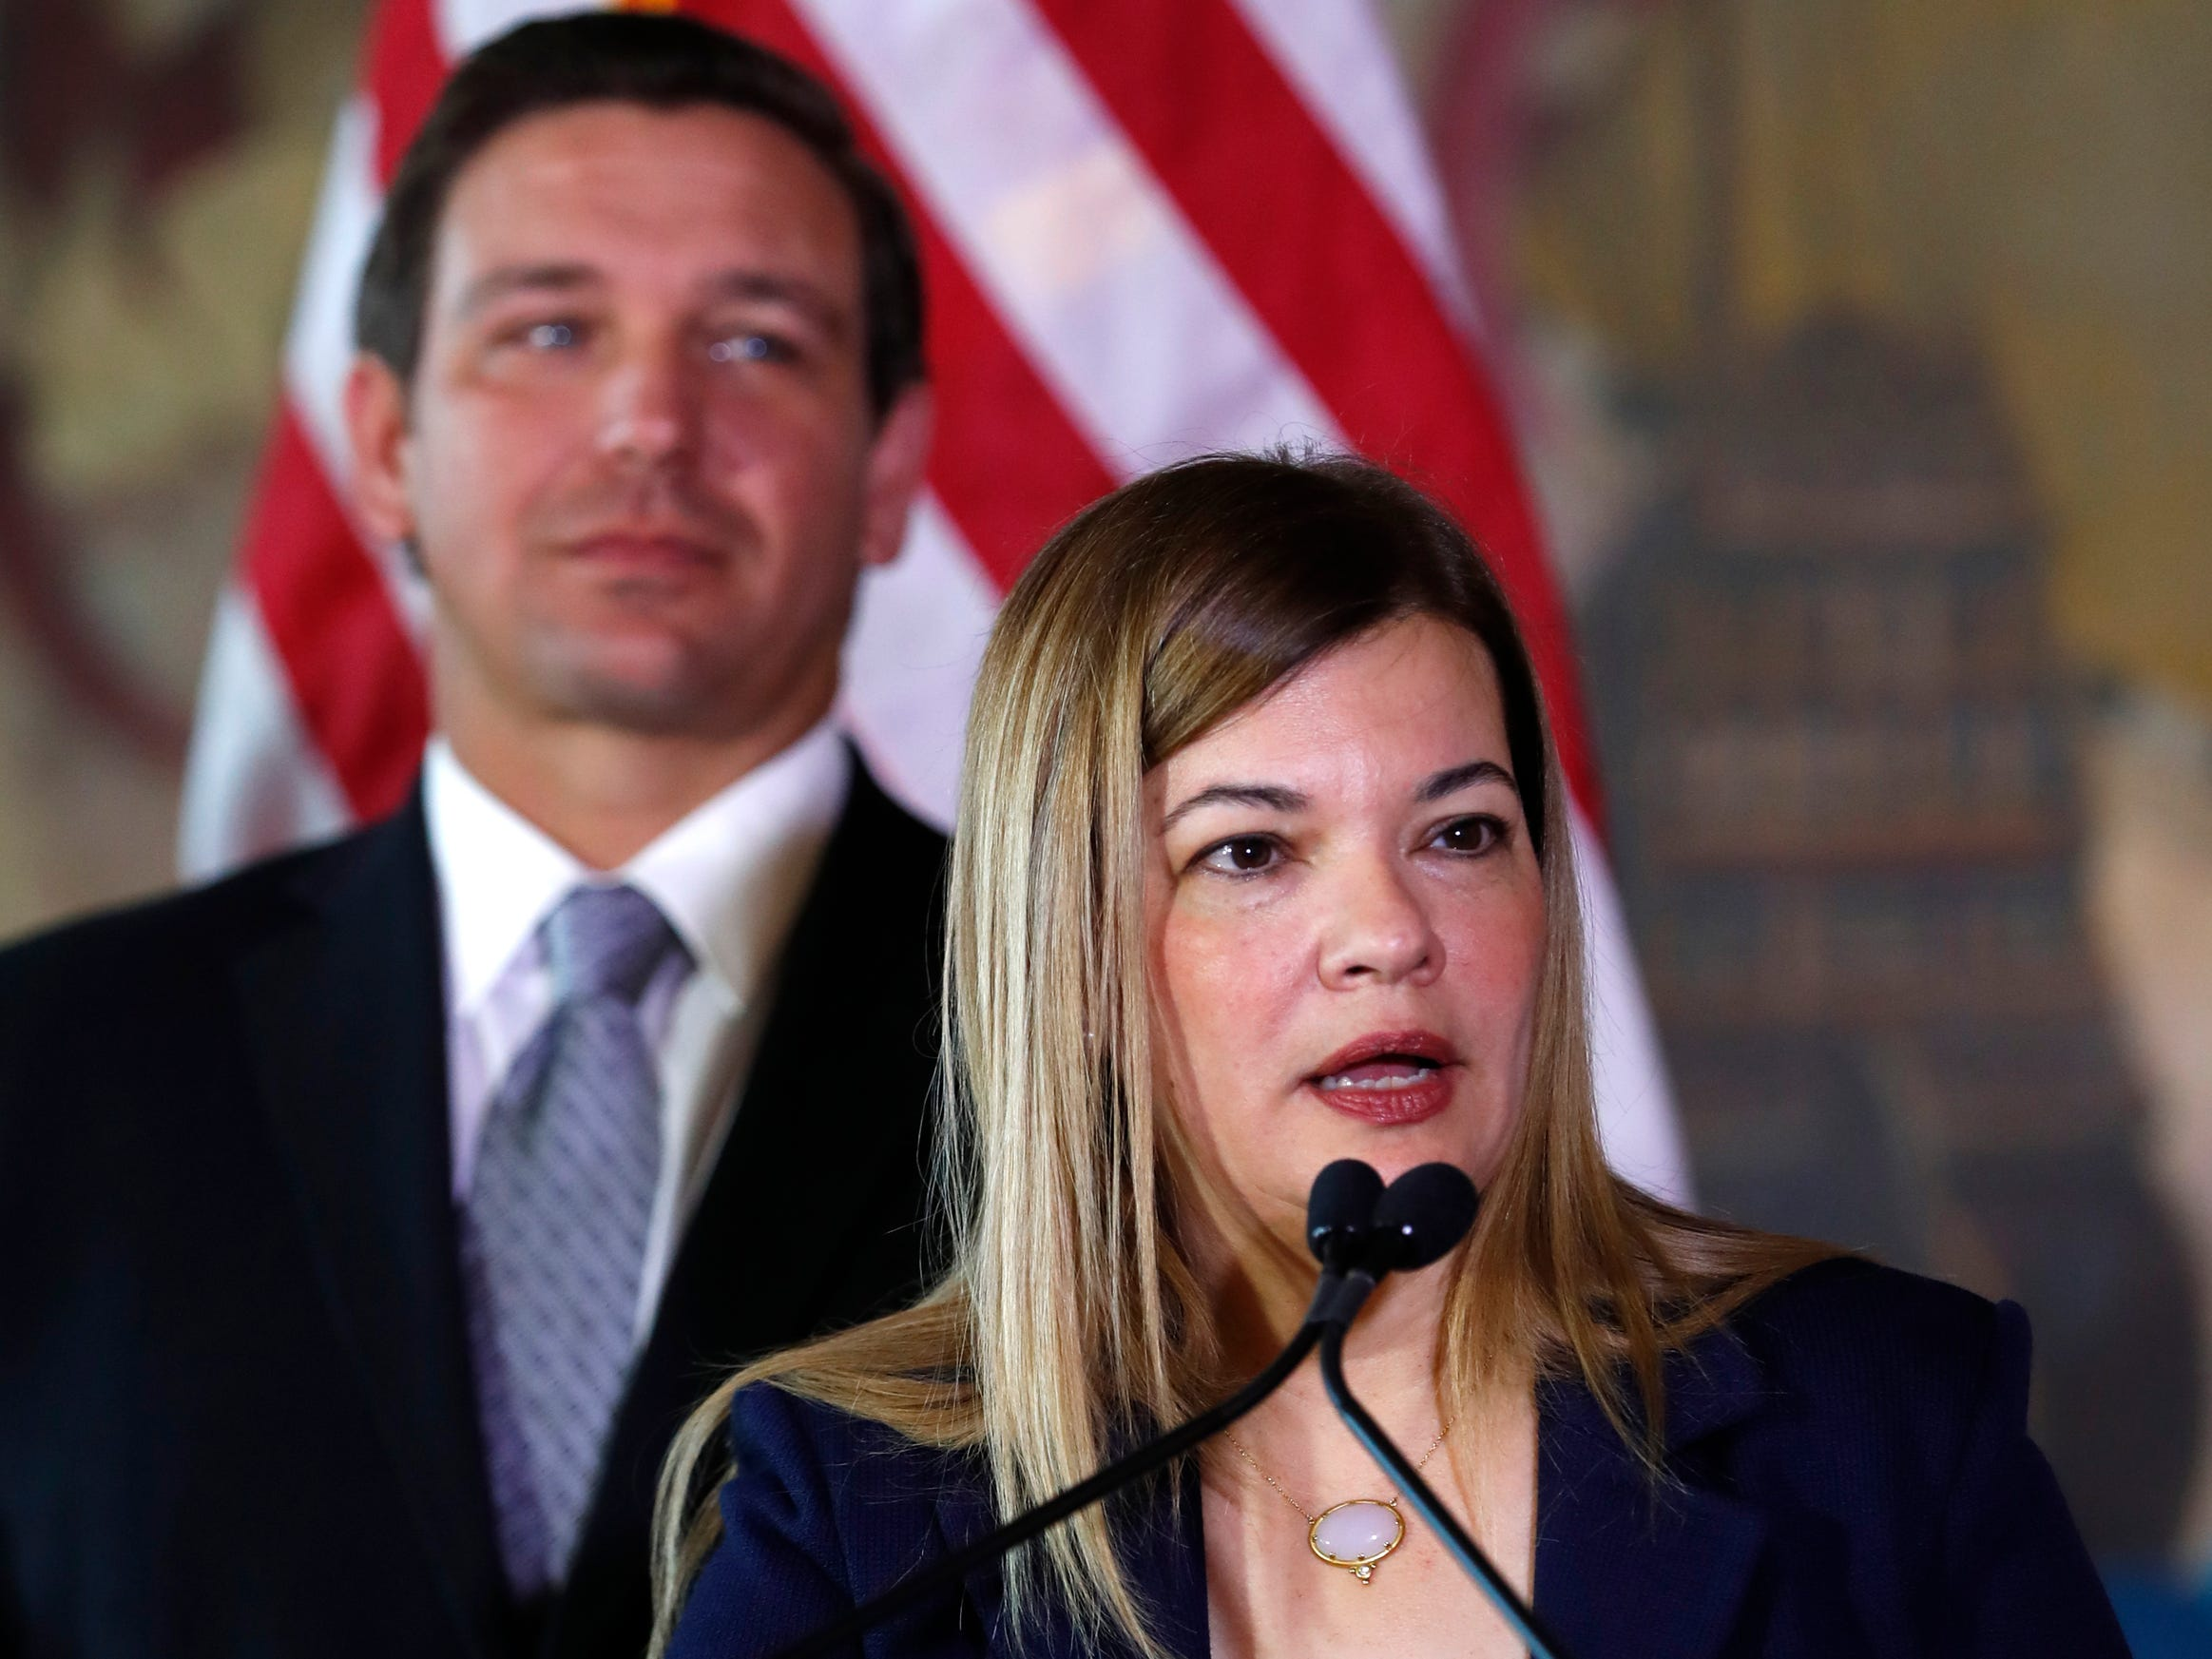 Barbara Lagoa, Gov. Ron DeSantis' pick for the Florida Supreme Court, gestures as she speaks after being introduced on Wednesday, Jan. 9, 2019, in Miami.